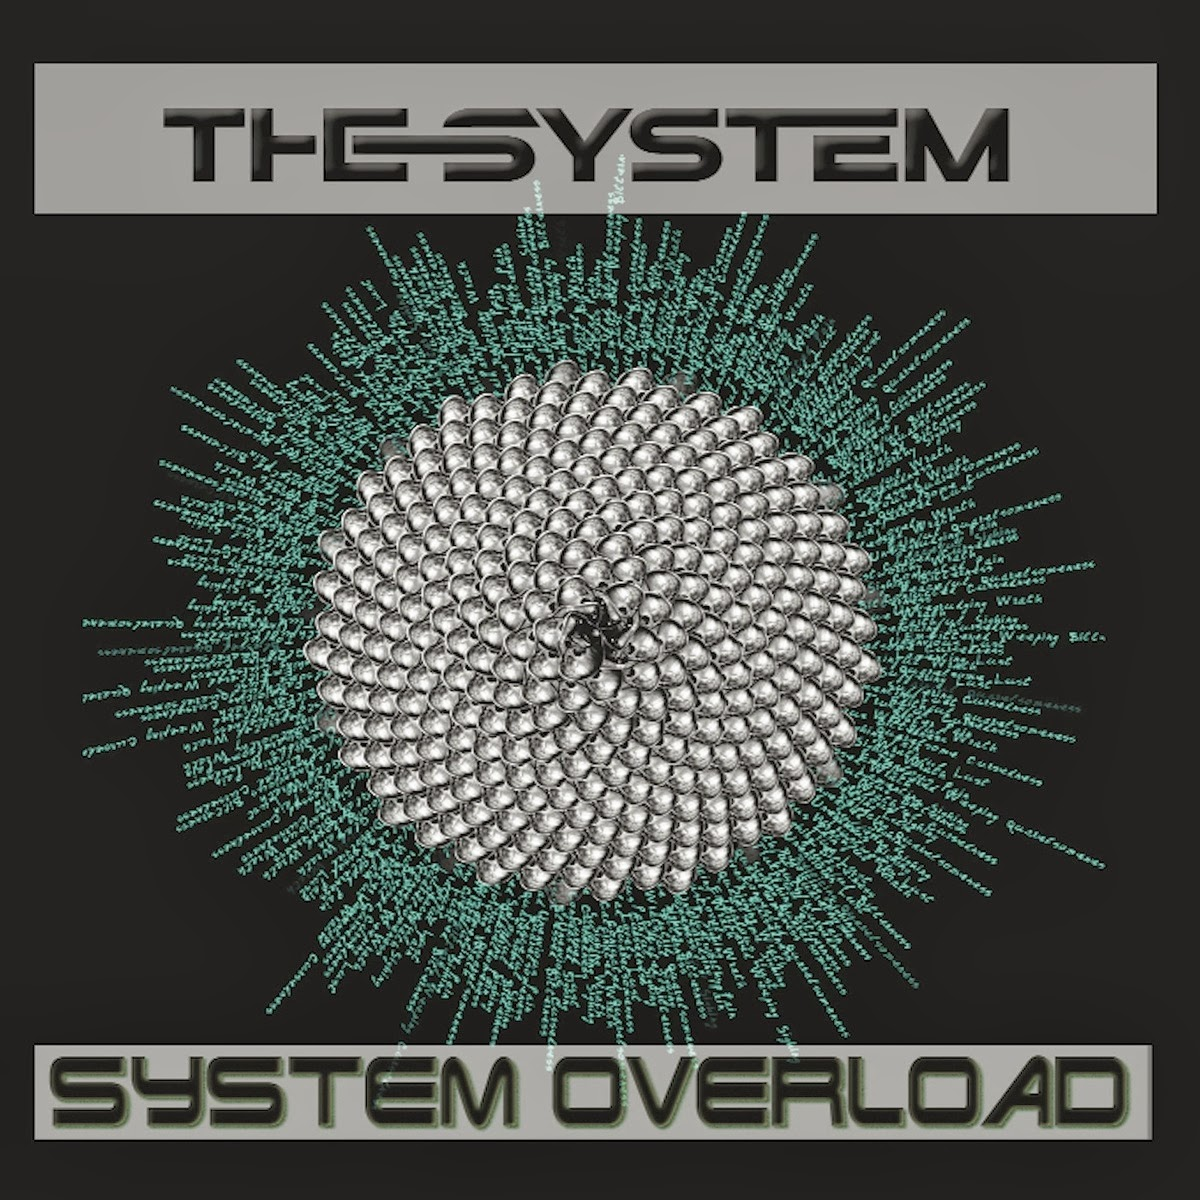 The System - System Overload